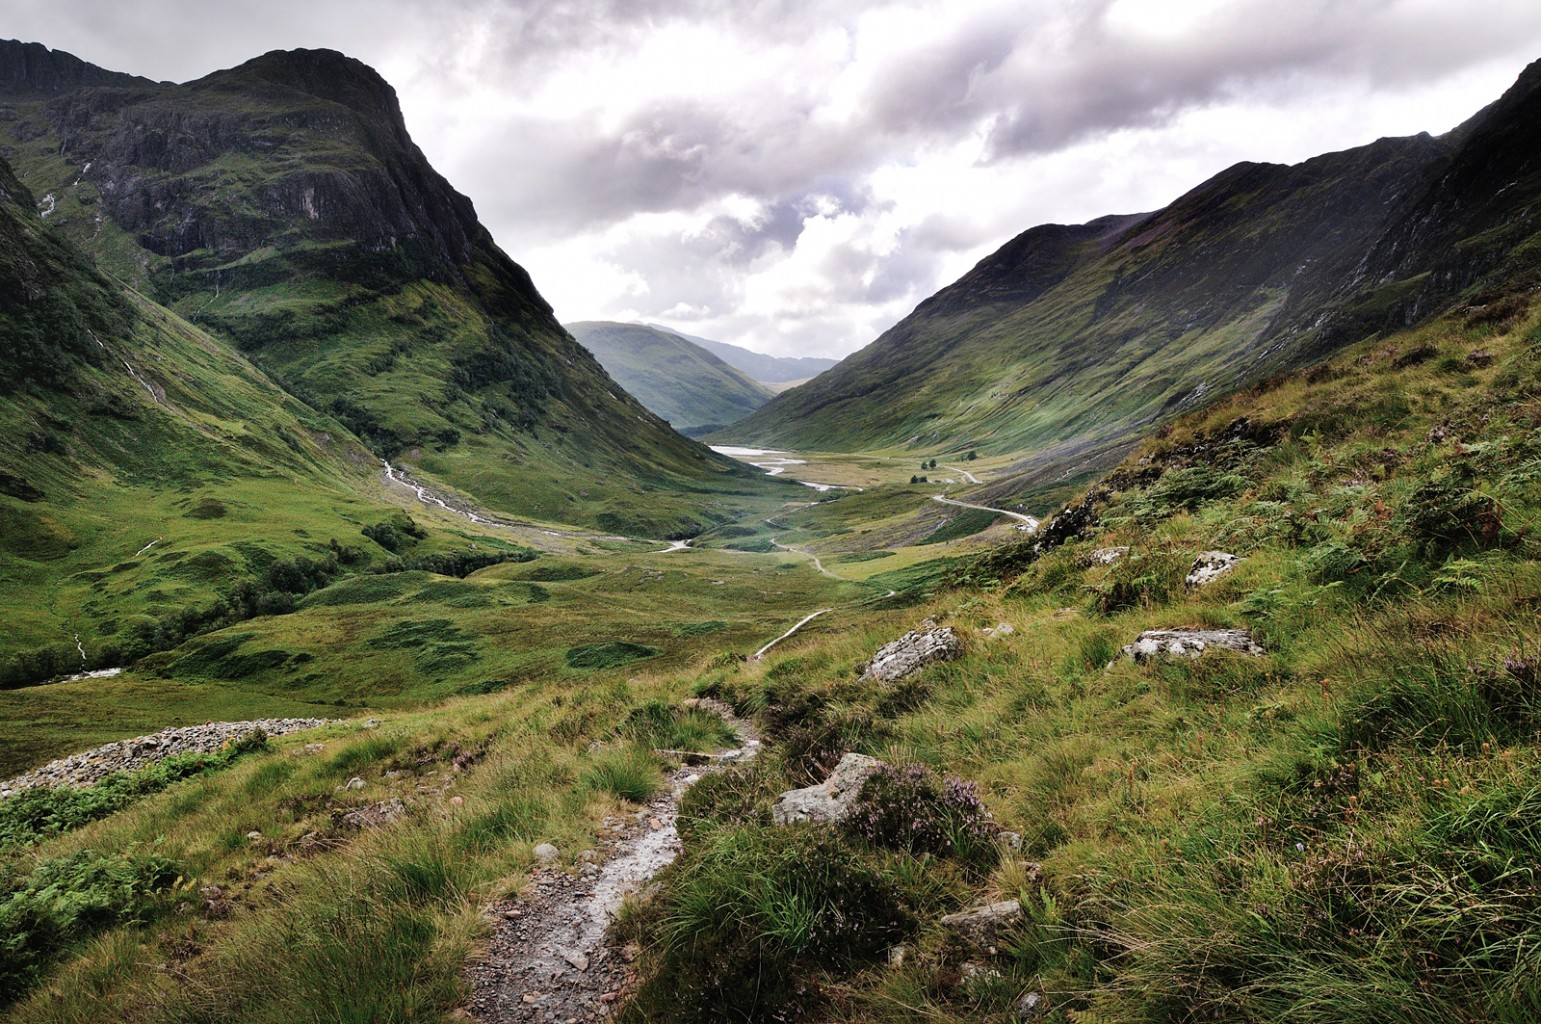 looking down Glencoe, Highlands of Scotland